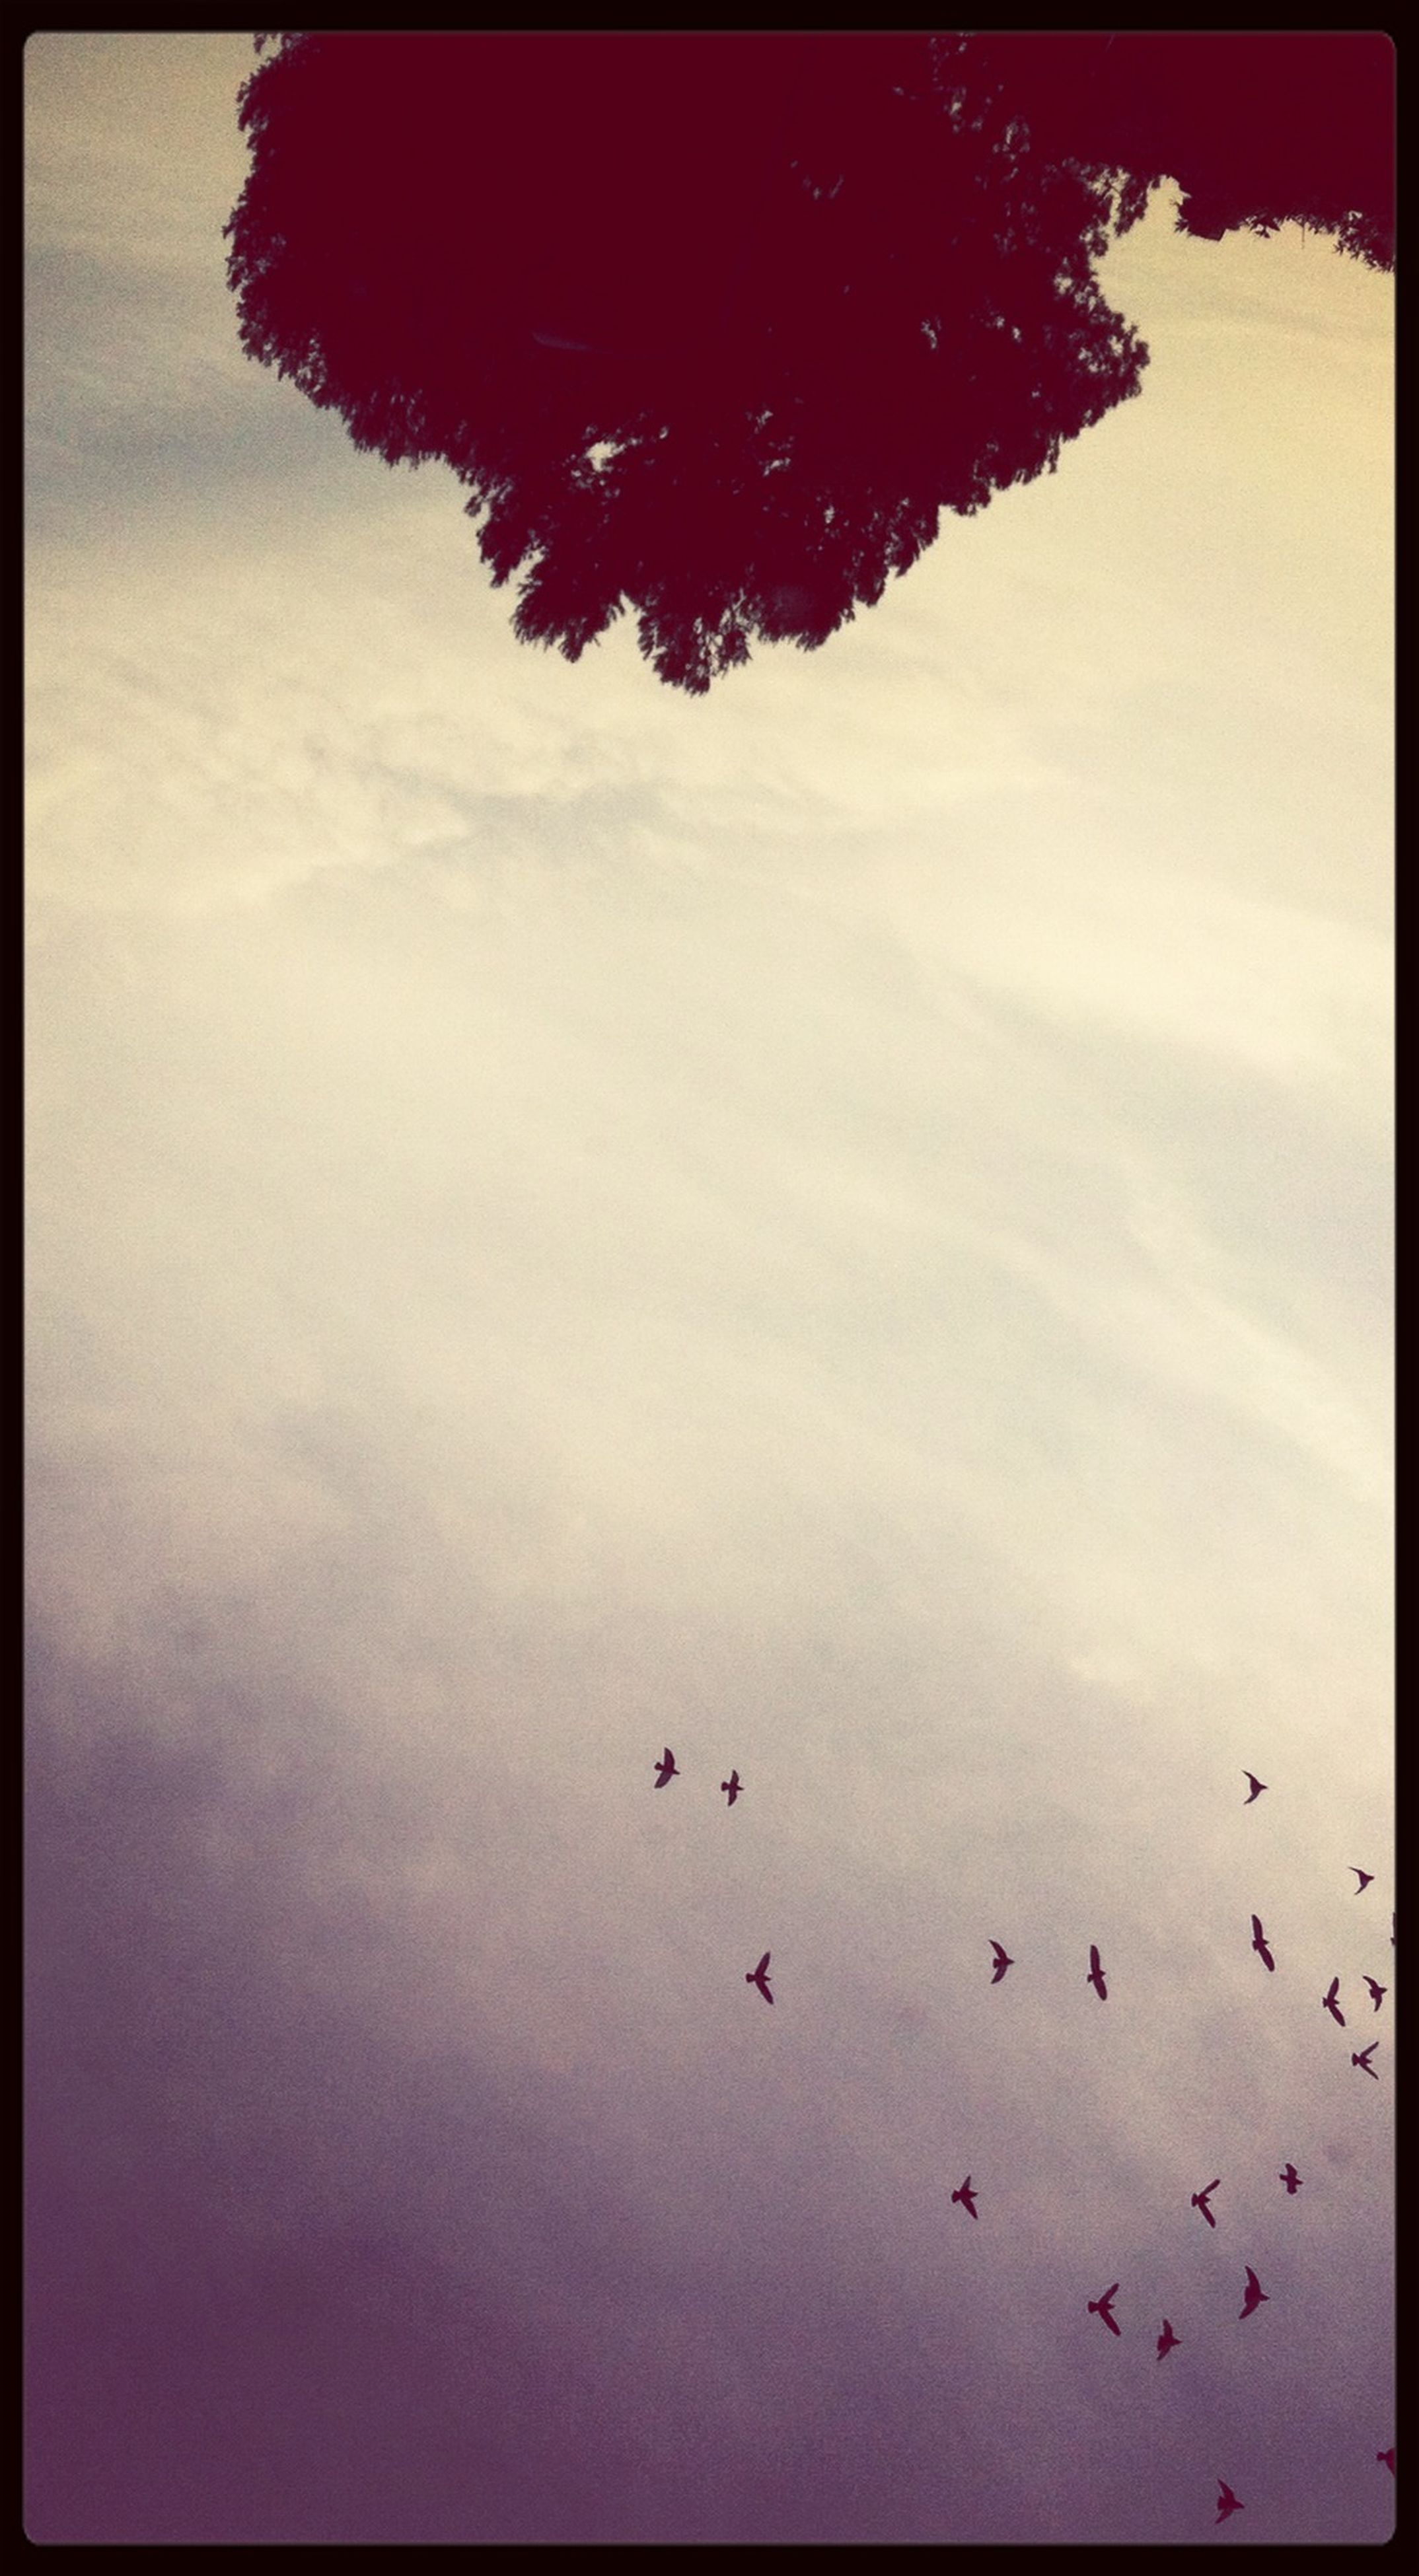 bird, animal themes, animals in the wild, low angle view, wildlife, flying, transfer print, sky, auto post production filter, tree, silhouette, flock of birds, nature, beauty in nature, mid-air, outdoors, tranquility, no people, dusk